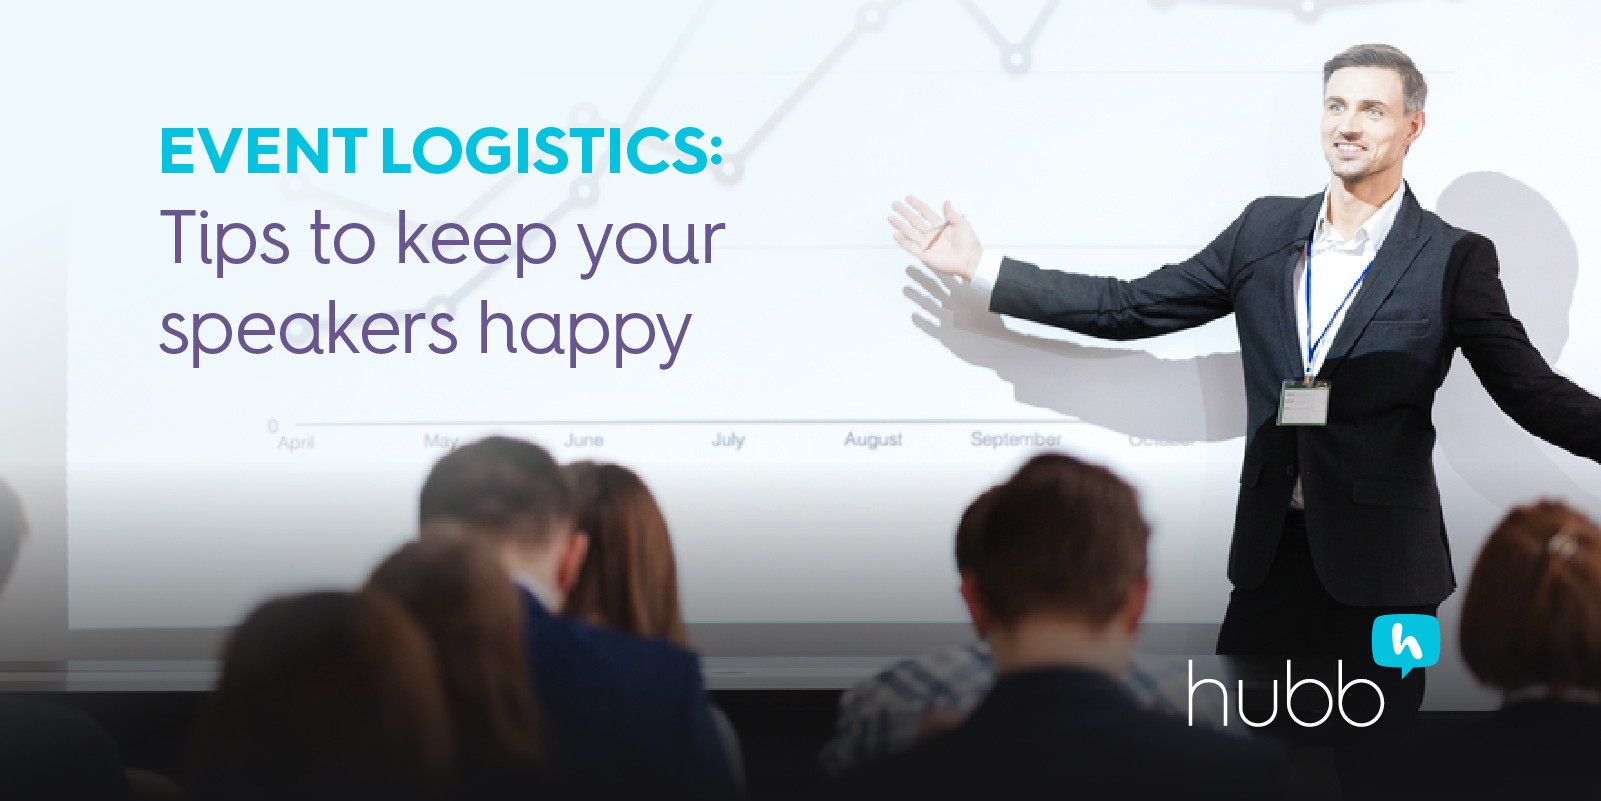 WEBINAR: Event logistics: Tips to keep your speakers happy